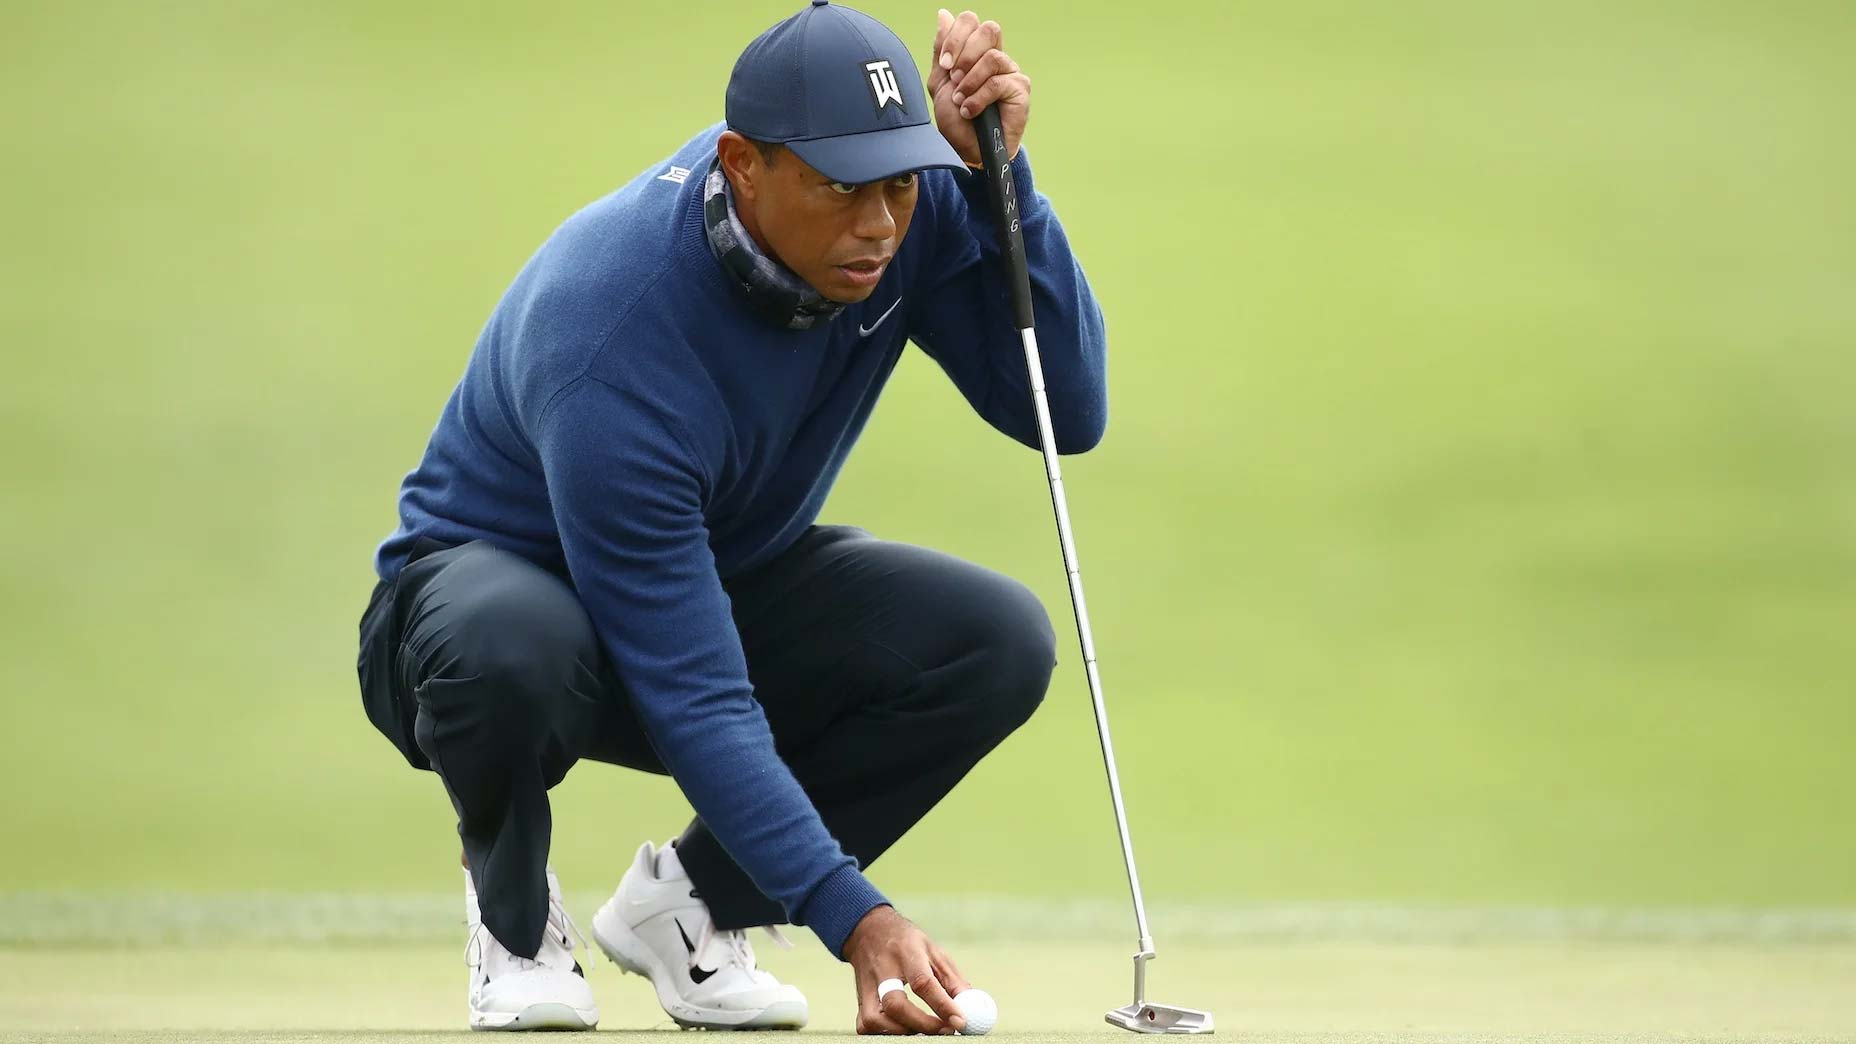 Tiger Woods putts at PGA Championship